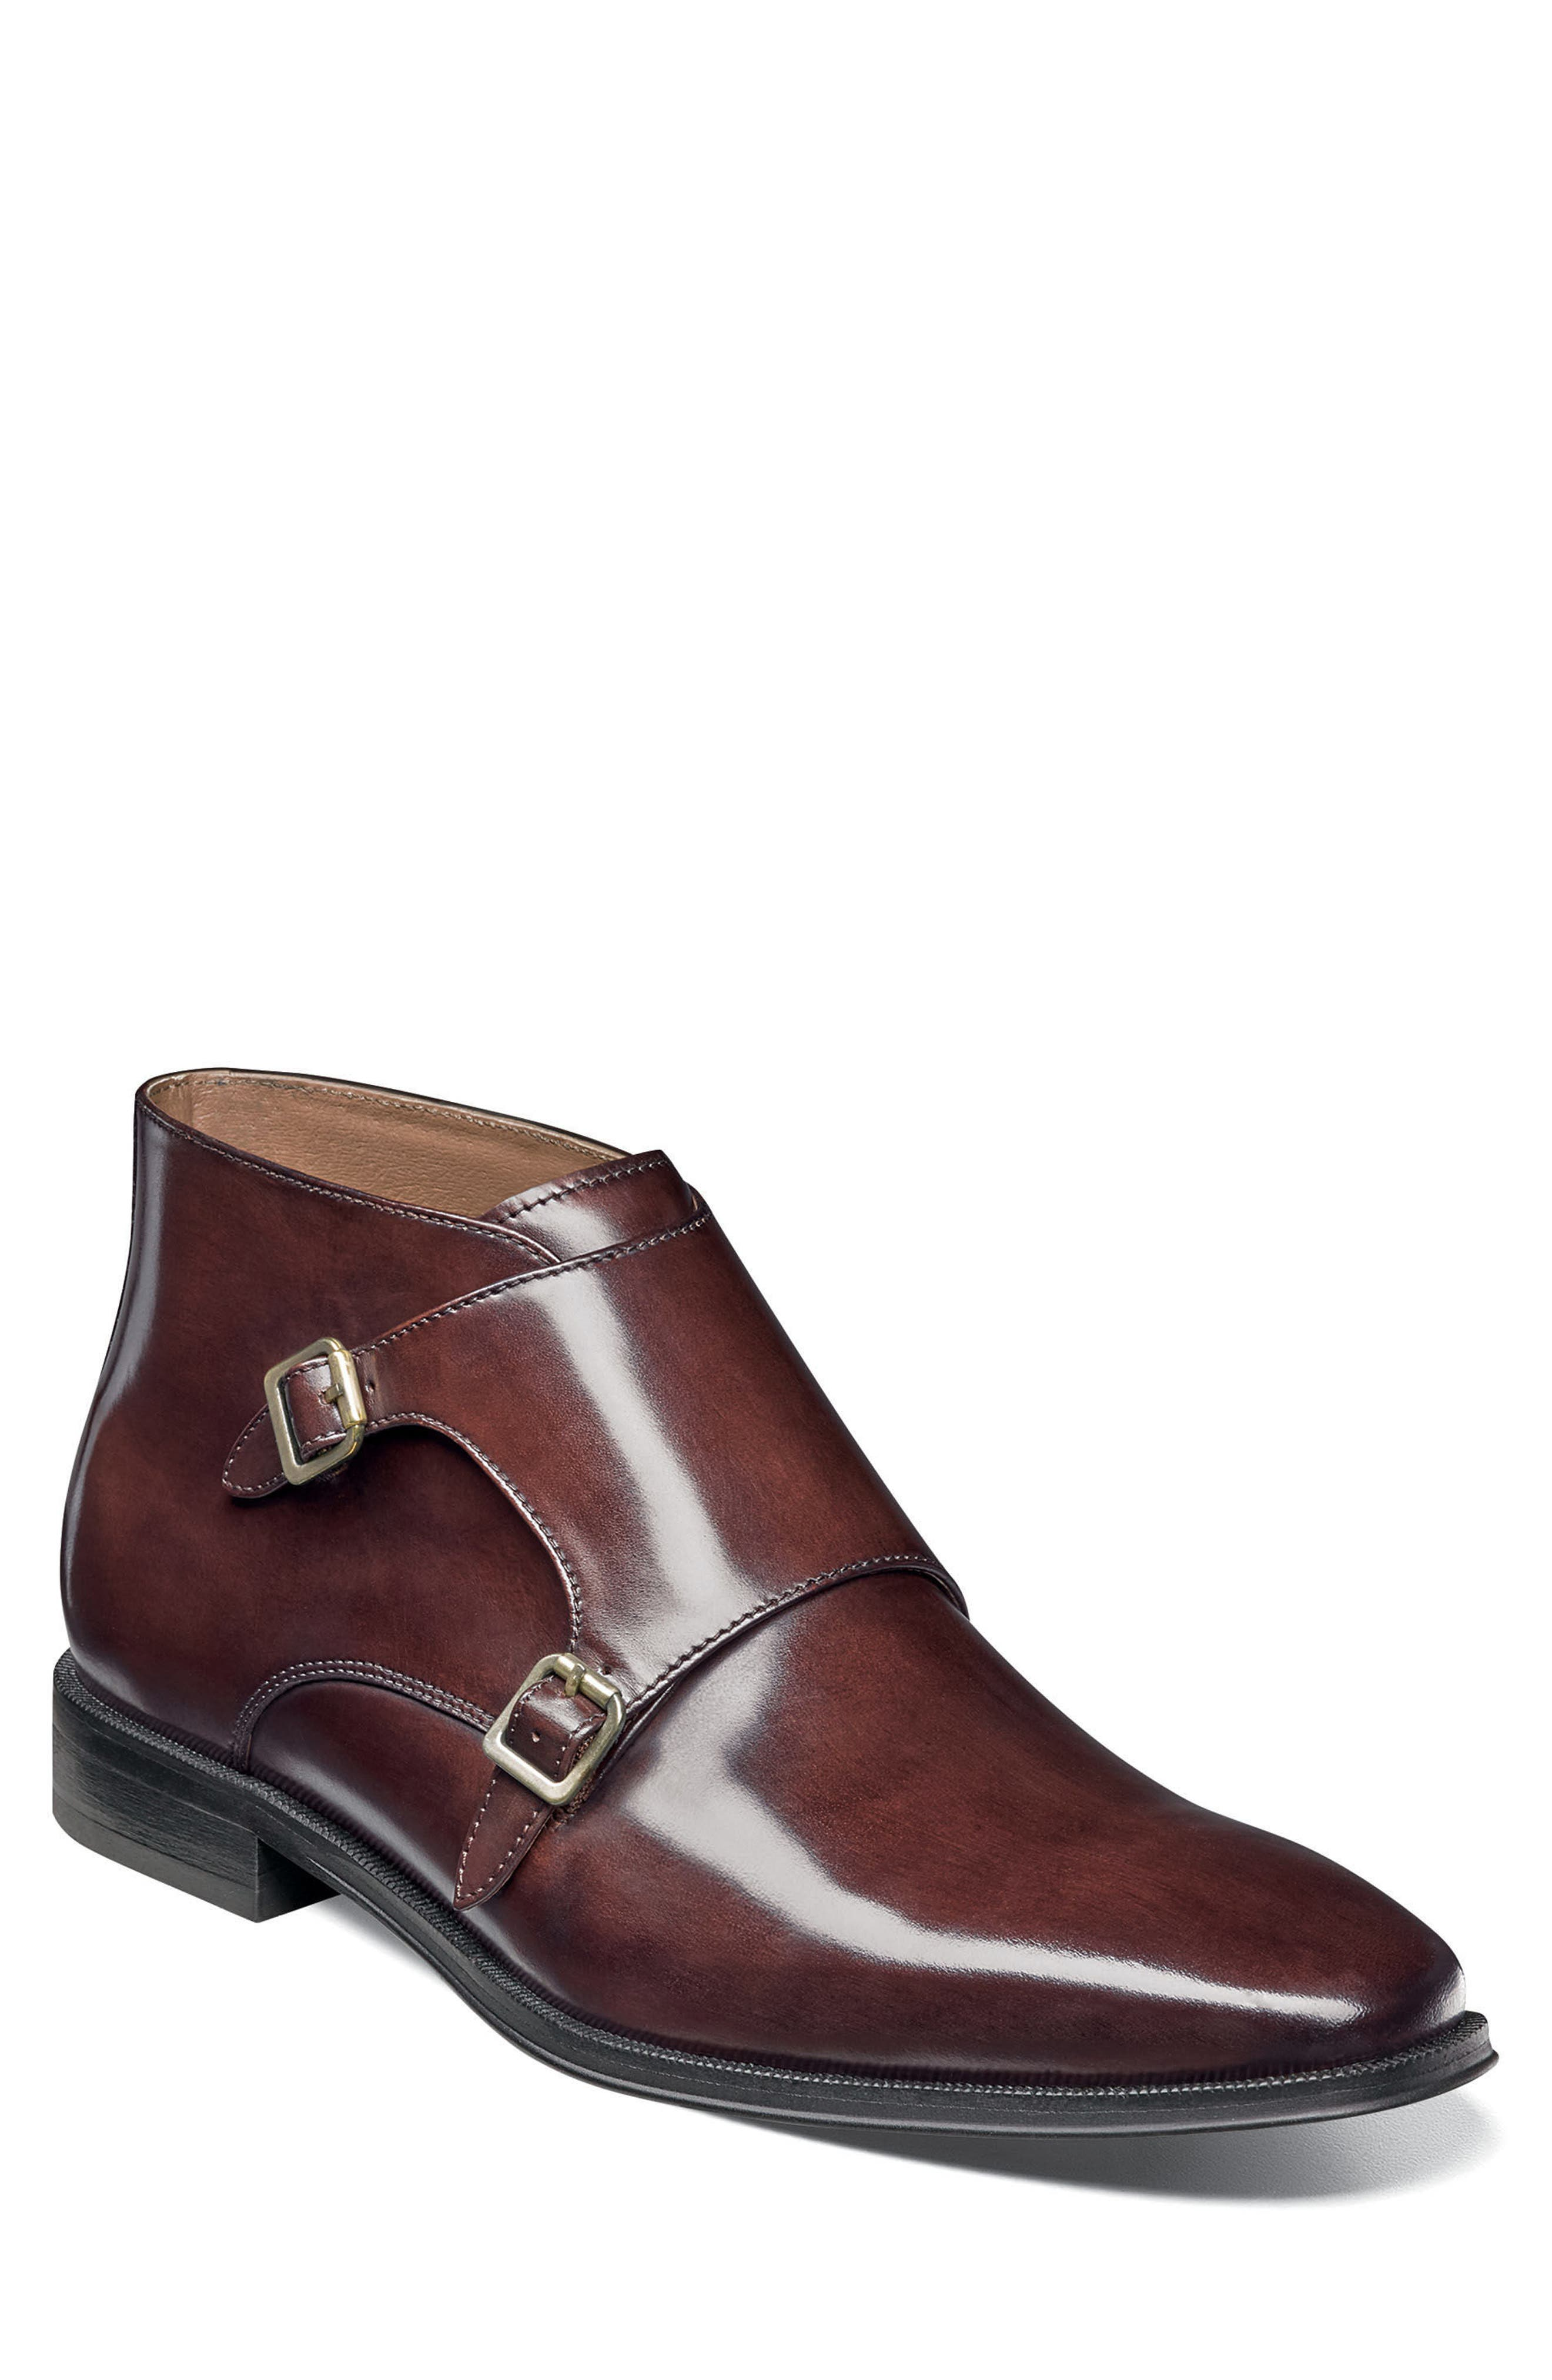 Belfast Double Monk Strap Boot,                             Main thumbnail 1, color,                             Brown Leather